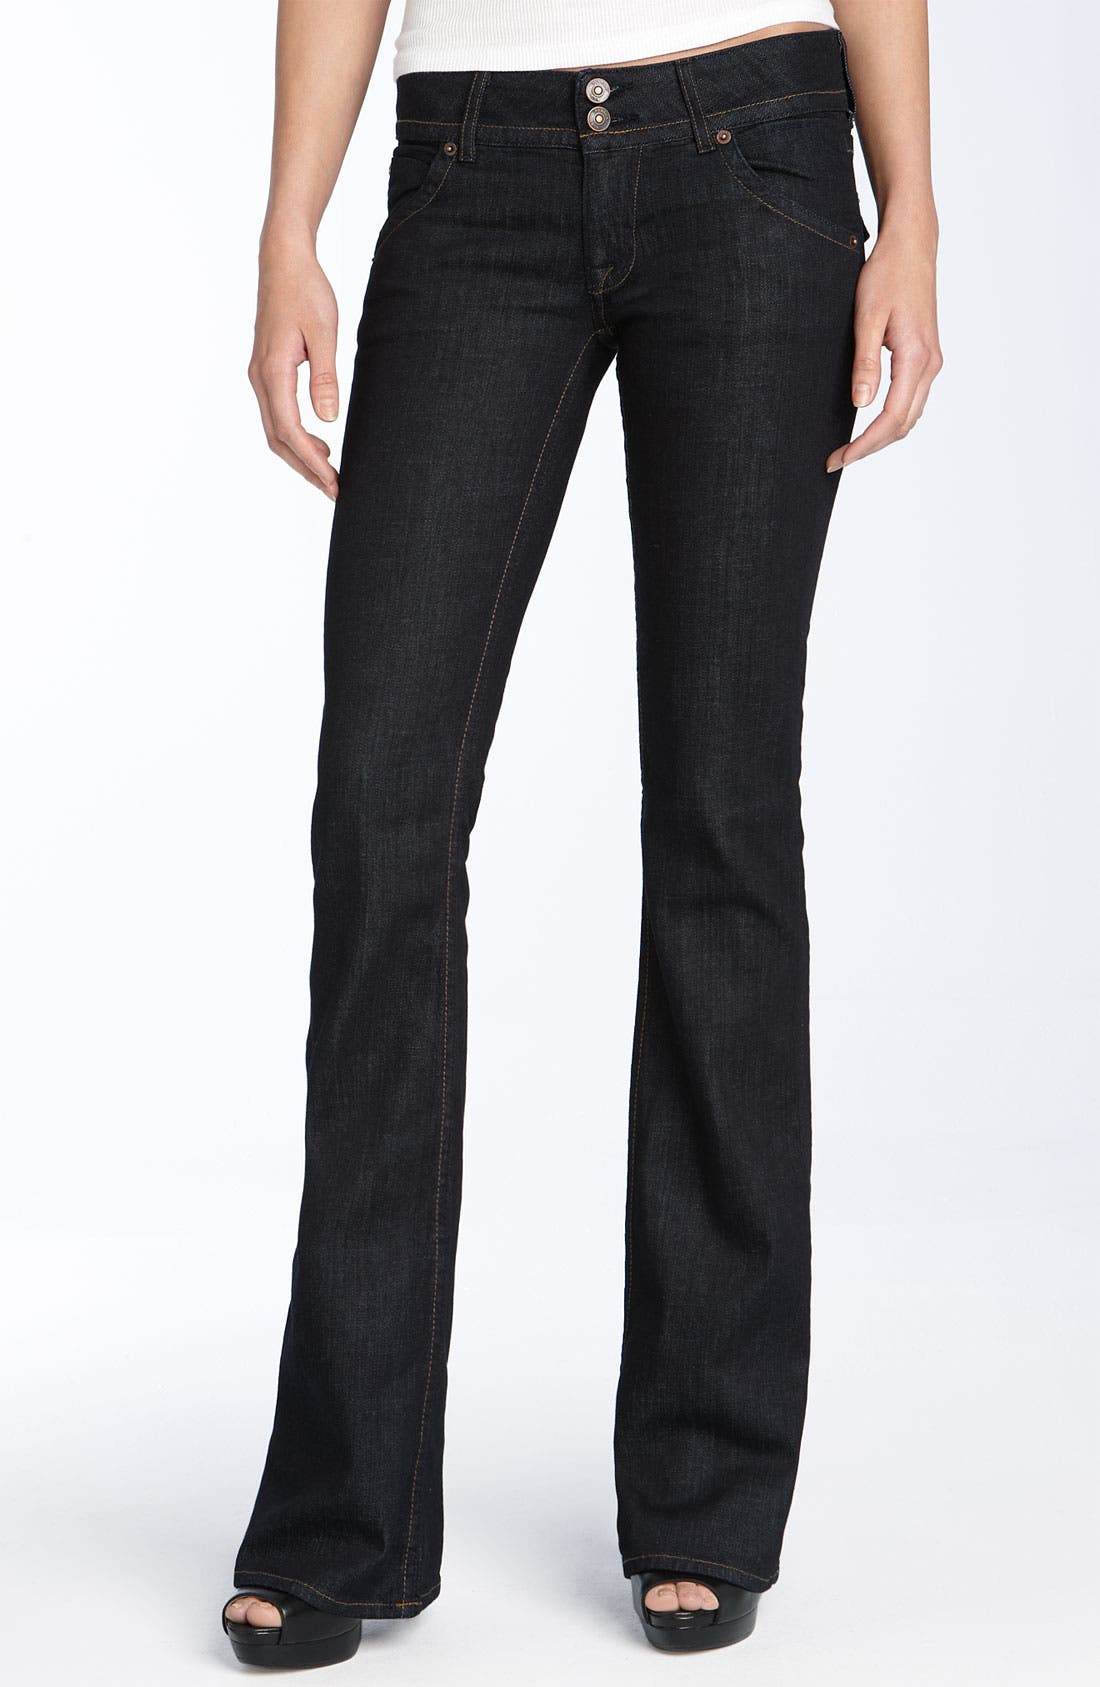 Alternate Image 1 Selected - Hudson Jeans Triangle Pocket Bootcut Stretch Jeans (Lisa Dark Blue Wash) (Petite)